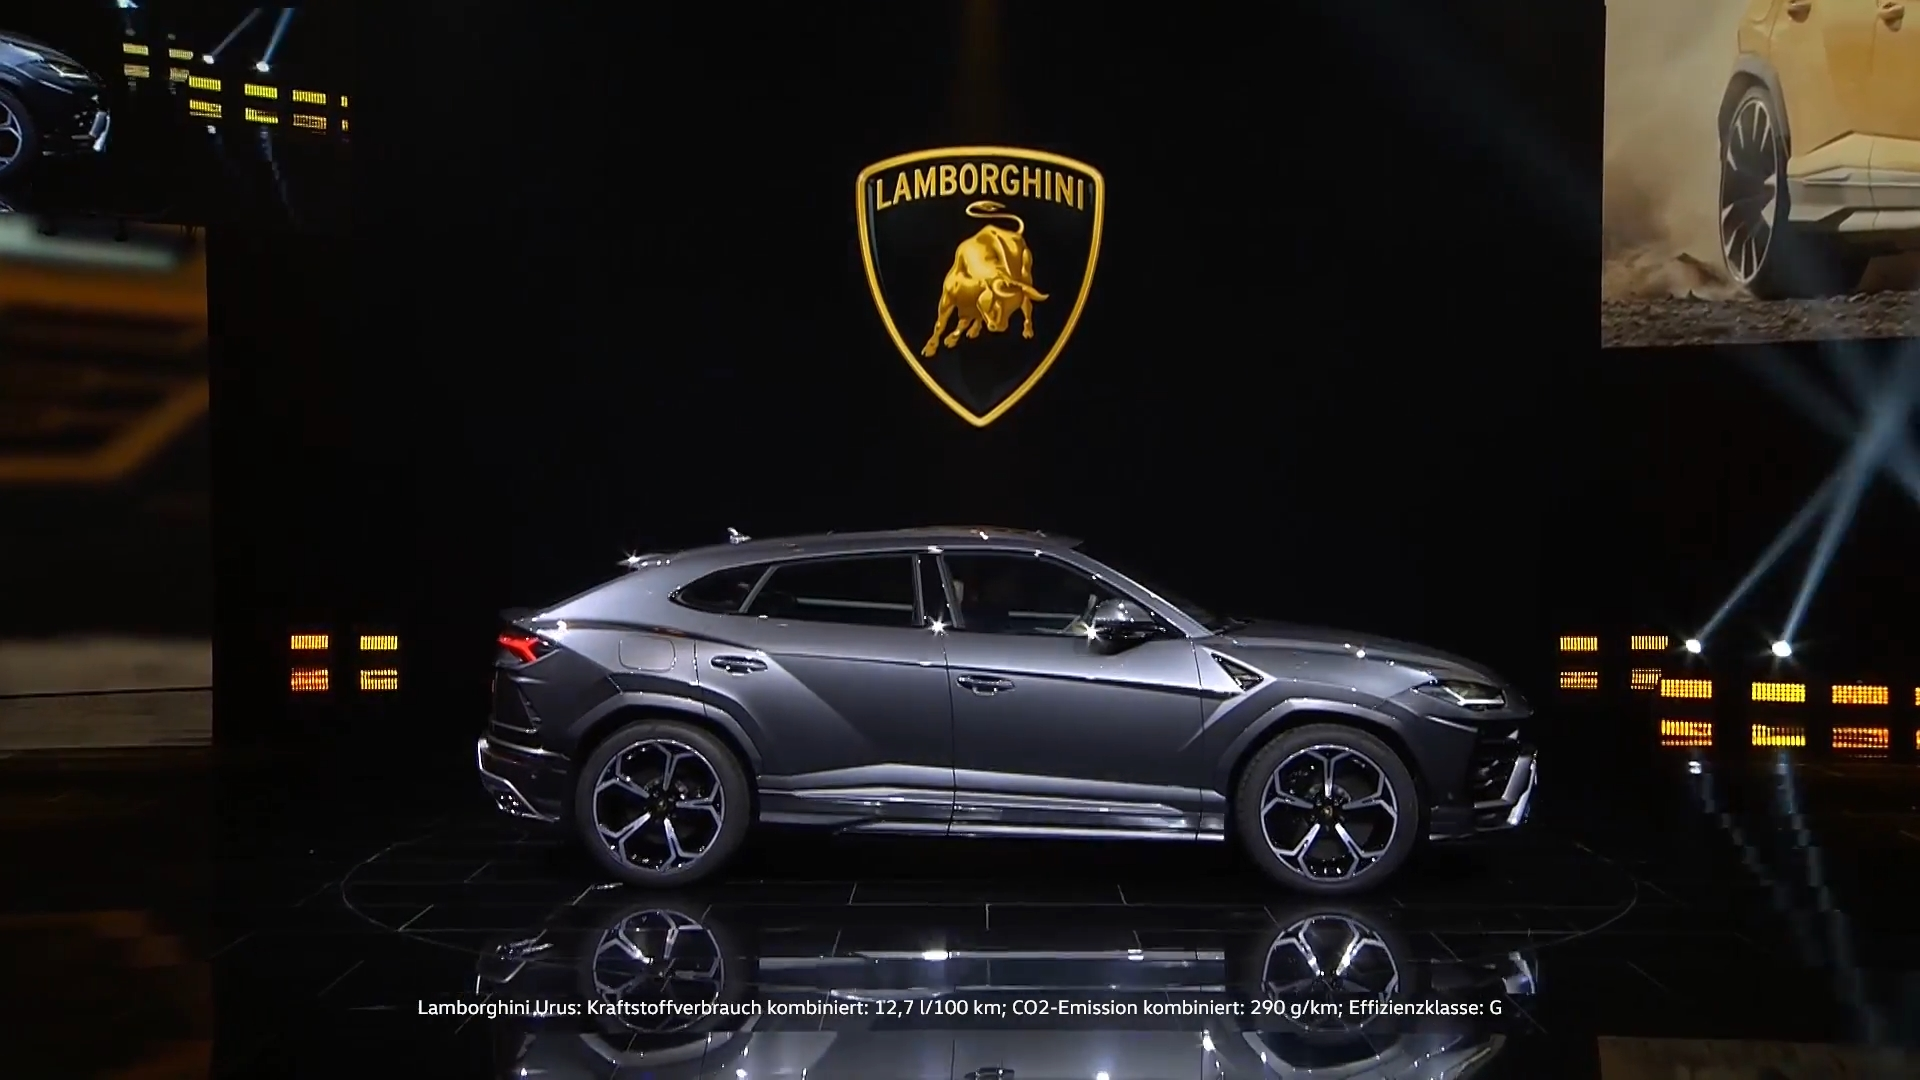 The new Lamborghini Urus premiere on the eve of Auto China 2018 en